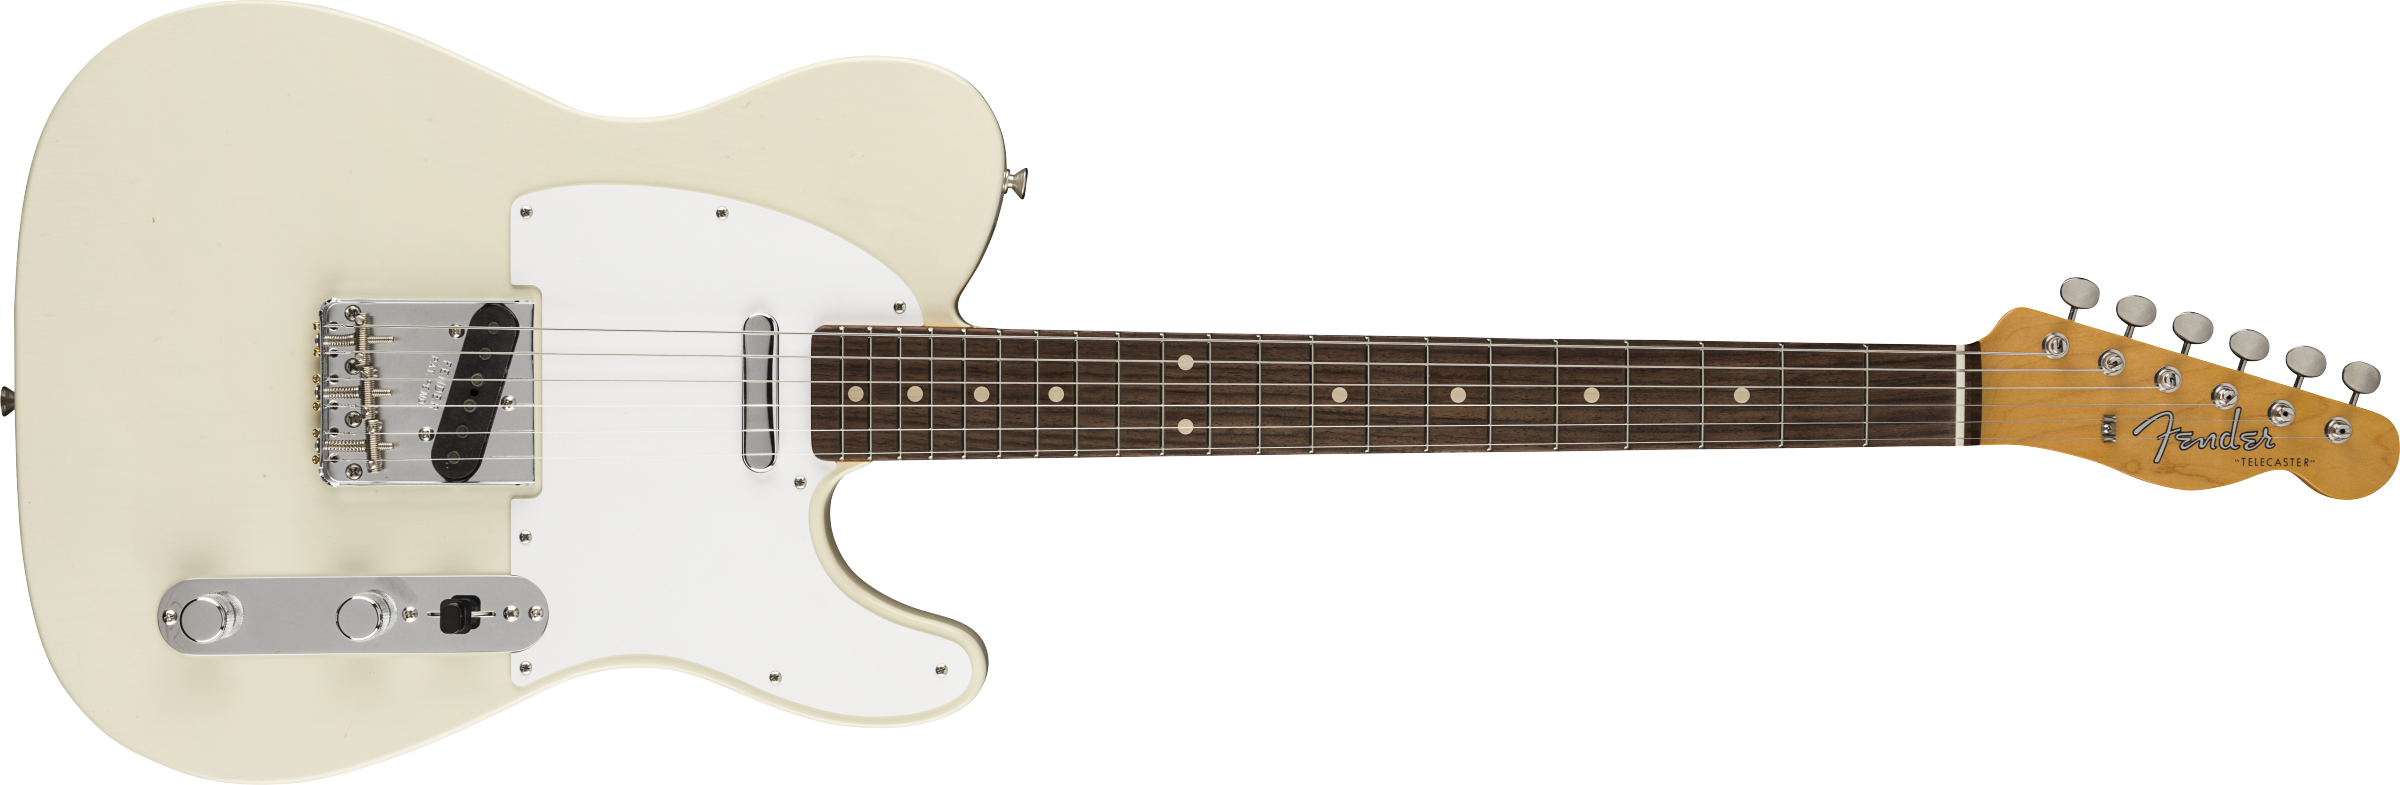 FENDER-Jimmy-Page-Signature-Telecaster-Journeyman-Relic-Maple-Fingerboard-White-Blonde-sku-571004627